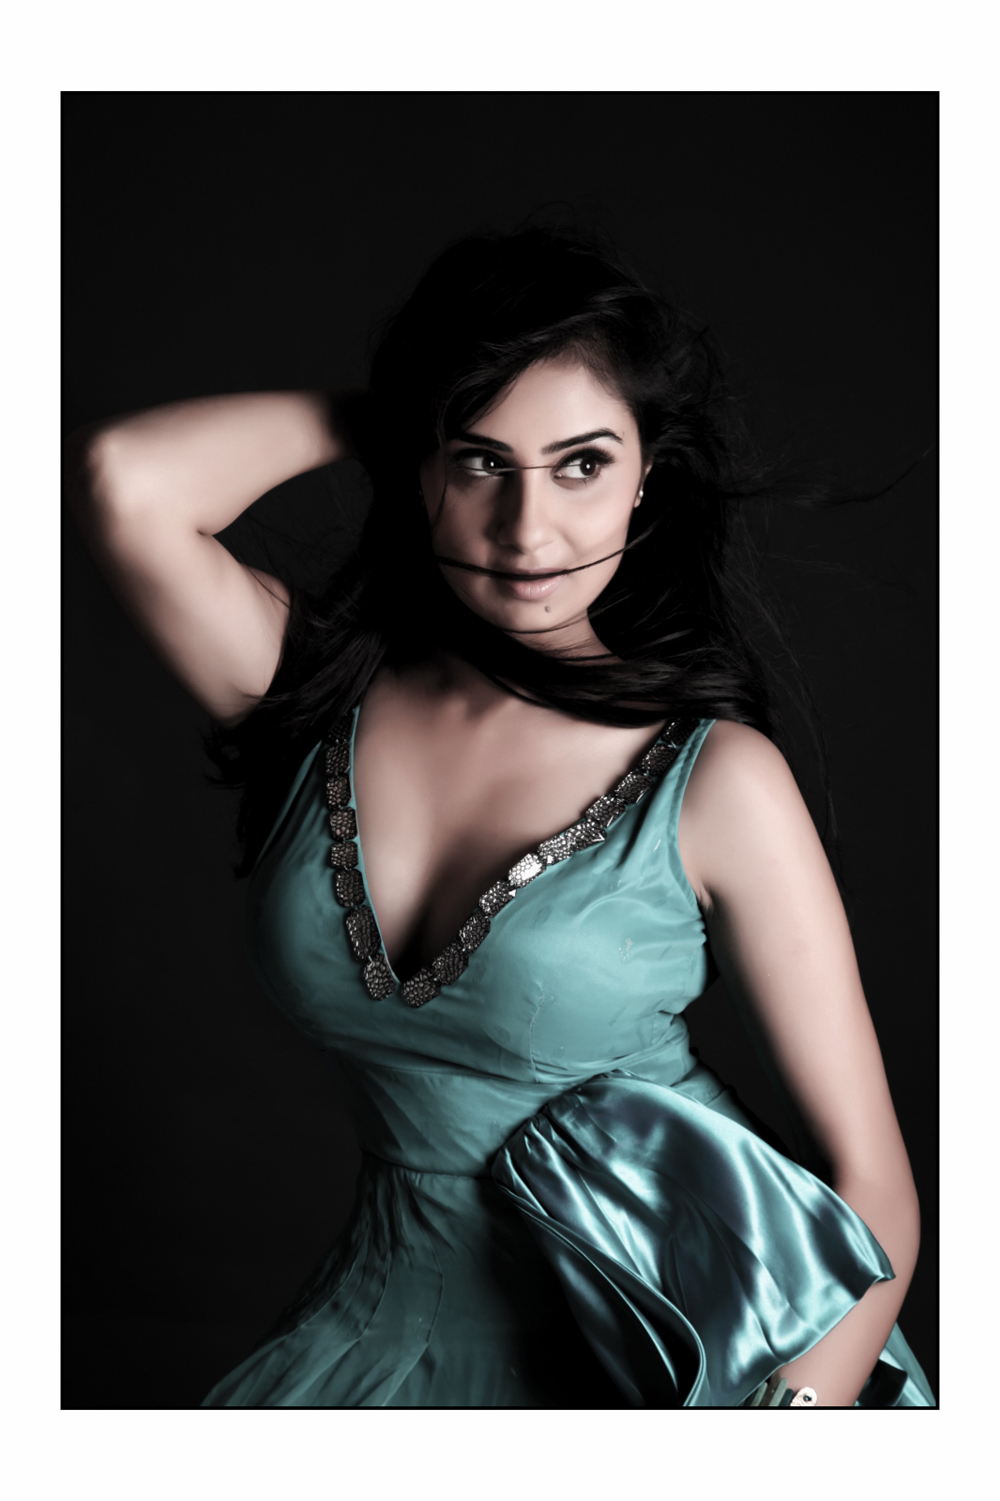 4TAMIL GALLERY: Actress Bhanu Mehra Latest Hot Photoshoot